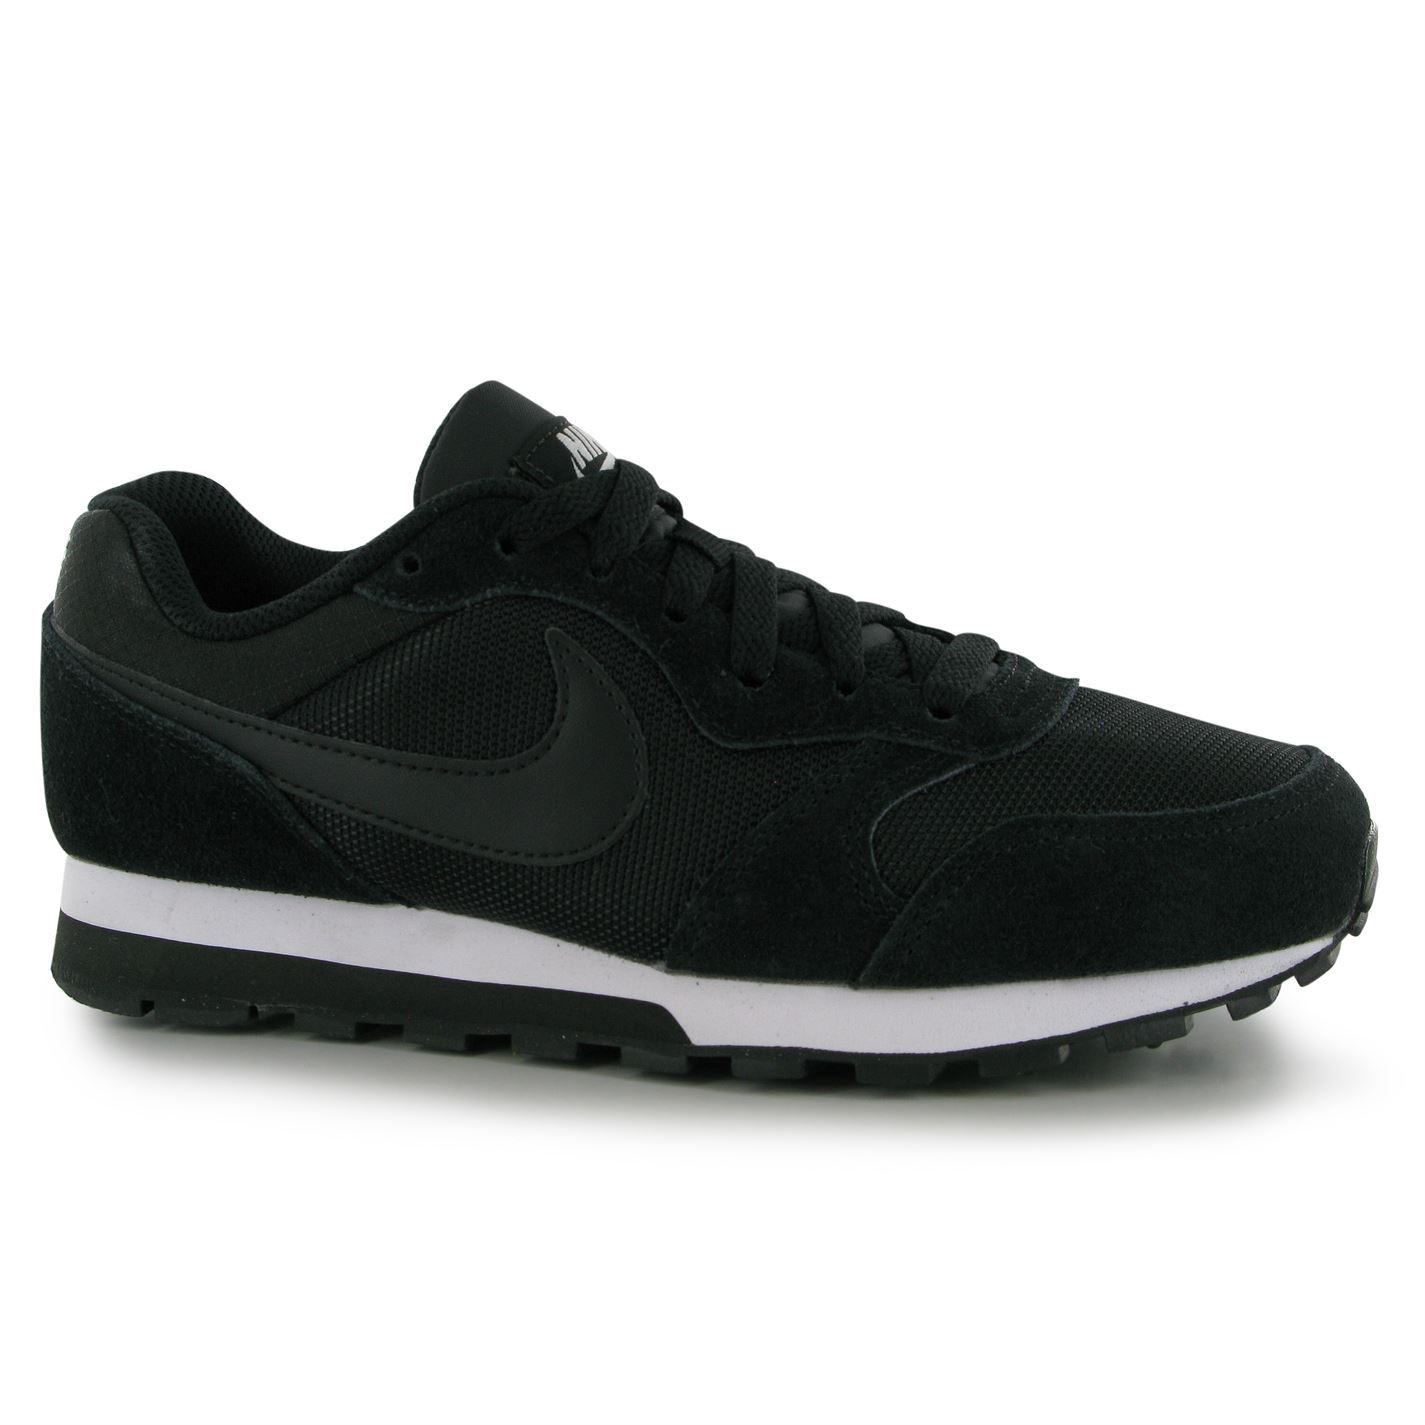 f8426b71932e Details about Nike MD Runner Trainers Womens Black White Casual Fashion  Sneakers Shoes